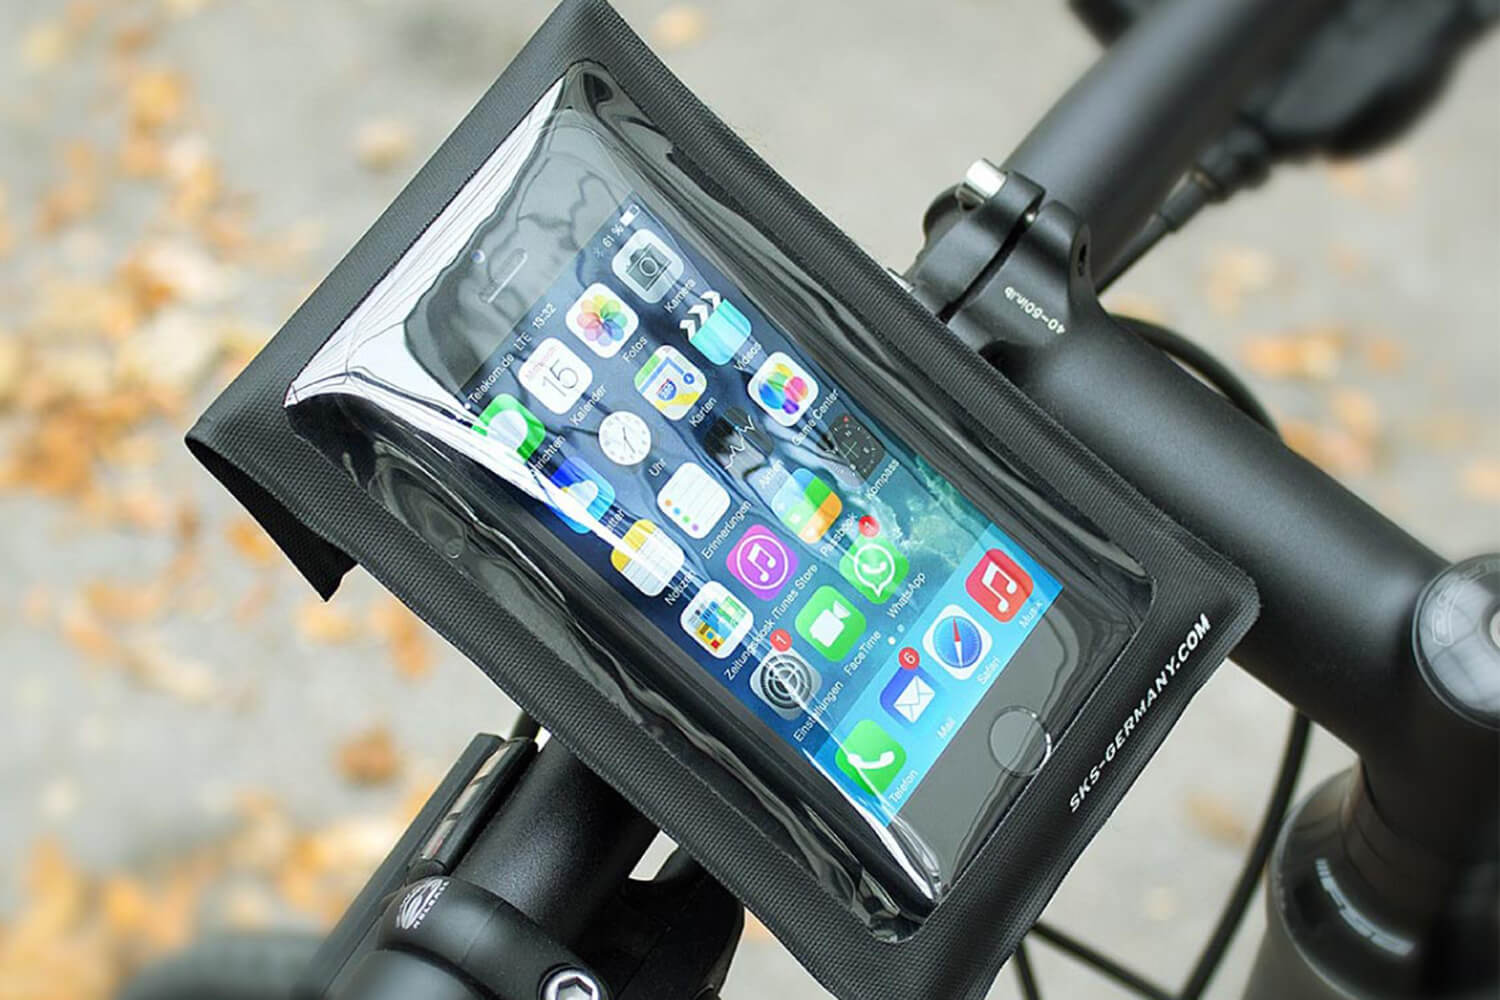 phone mount, bike phone mount, phone holder for bike